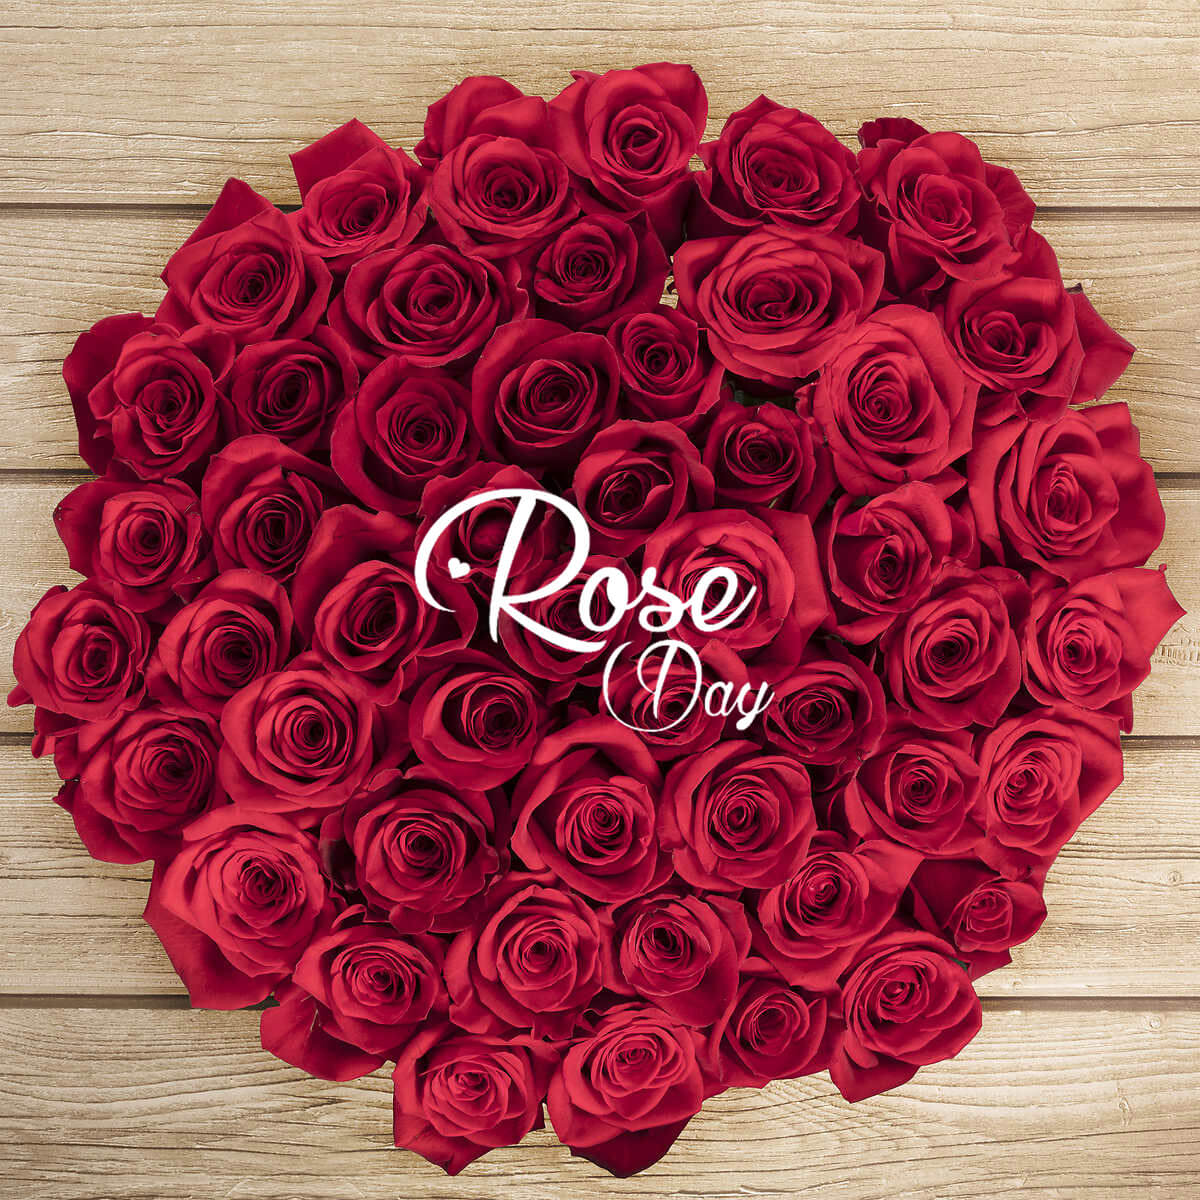 happy rose day wishes bunch valentine image picture hd wallpaper